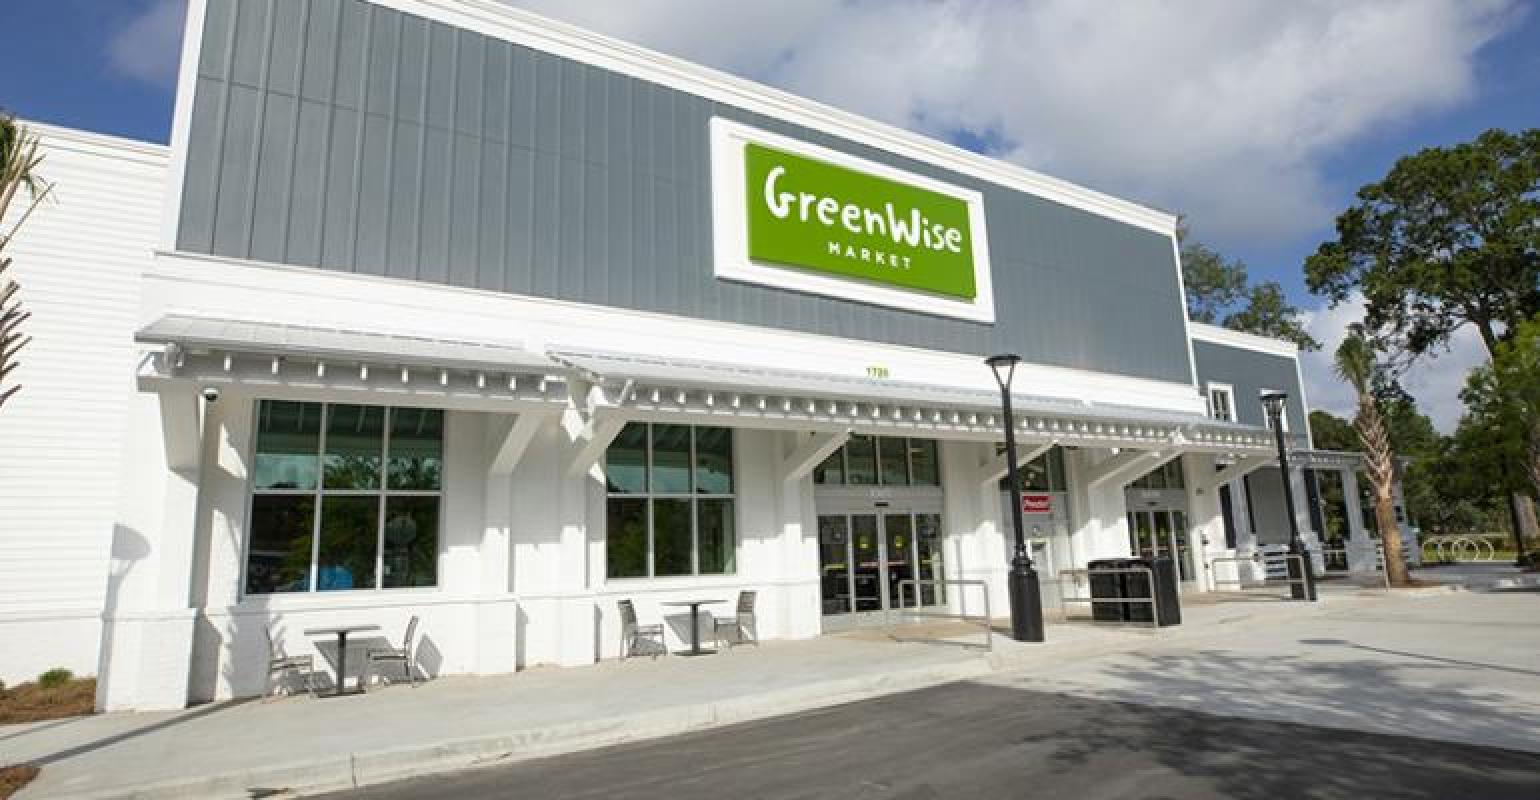 Publix targets Florida for another GreenWise Market